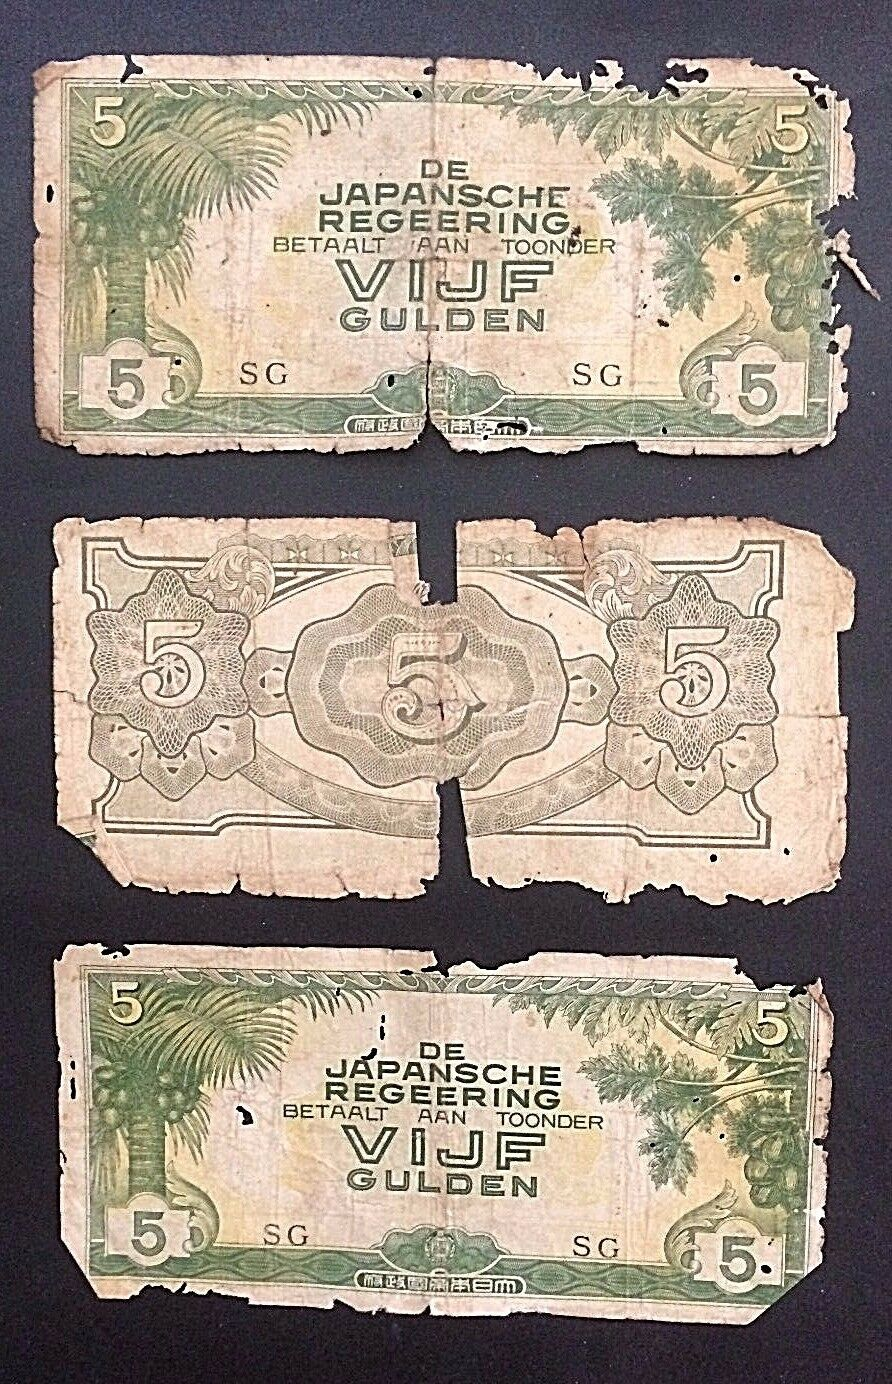 24 JAPAN MILITARY OCCUPATION WWII 1942 USED 5 GULDEN NETHERLANDS INDIES P# 124